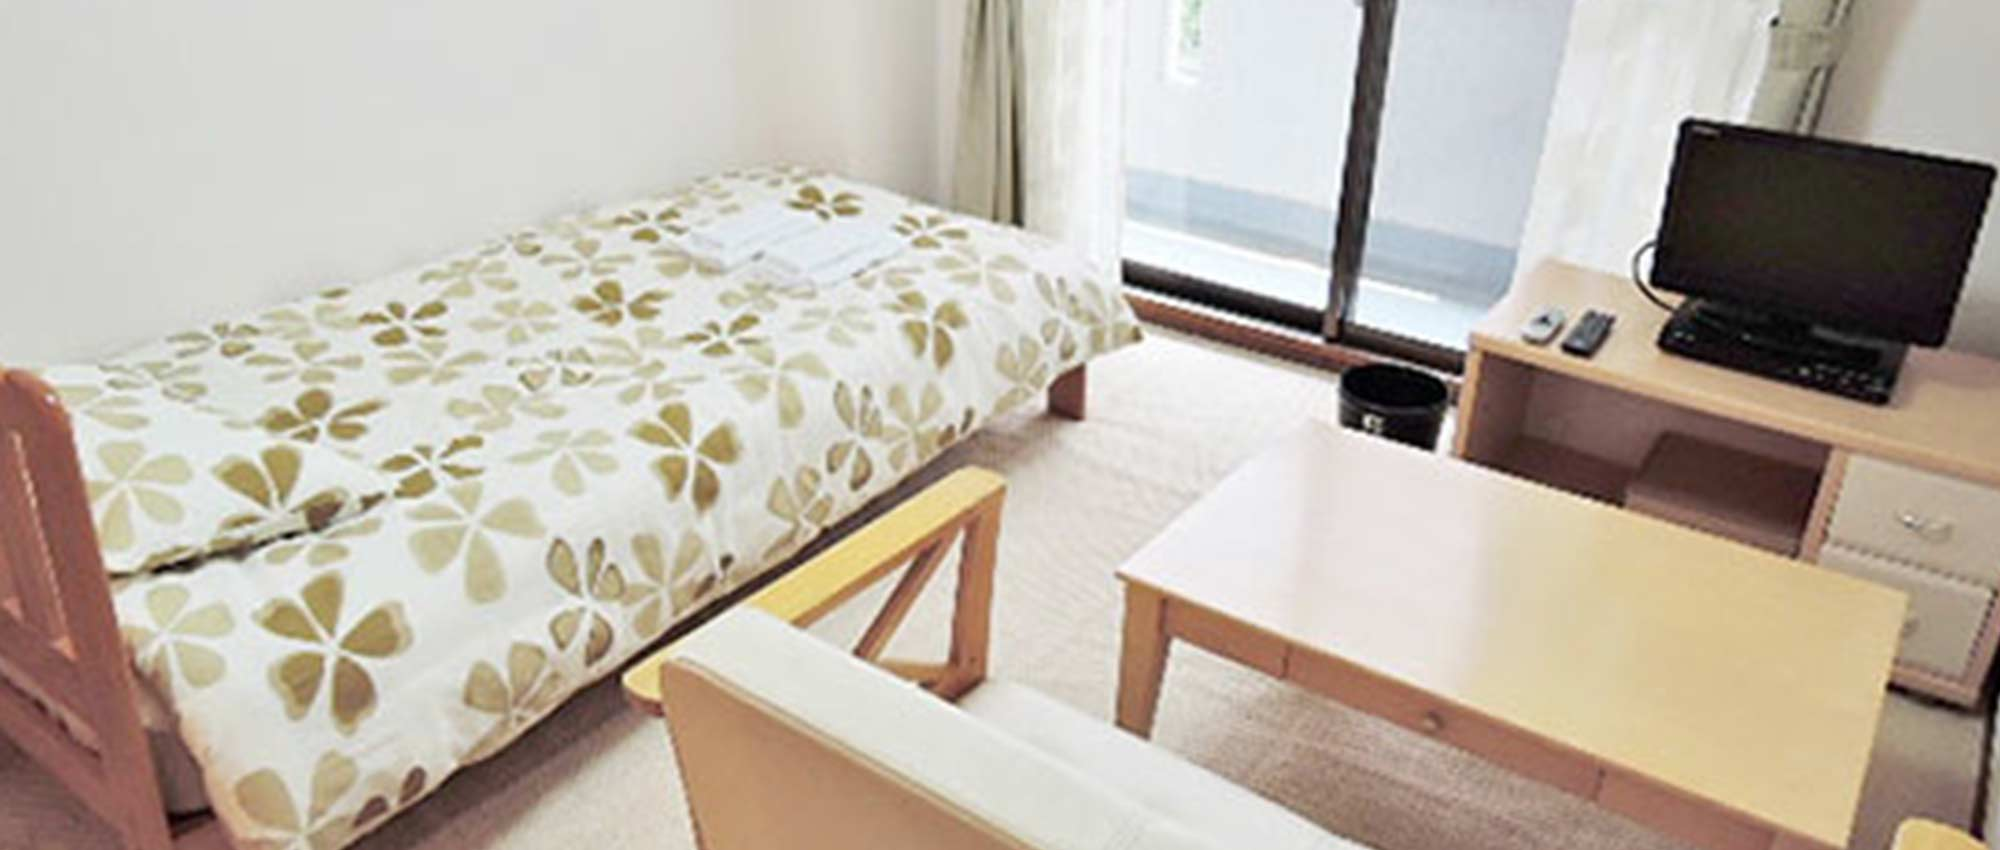 Mid-Range Furnished Short-Term Rentals in Tokyo